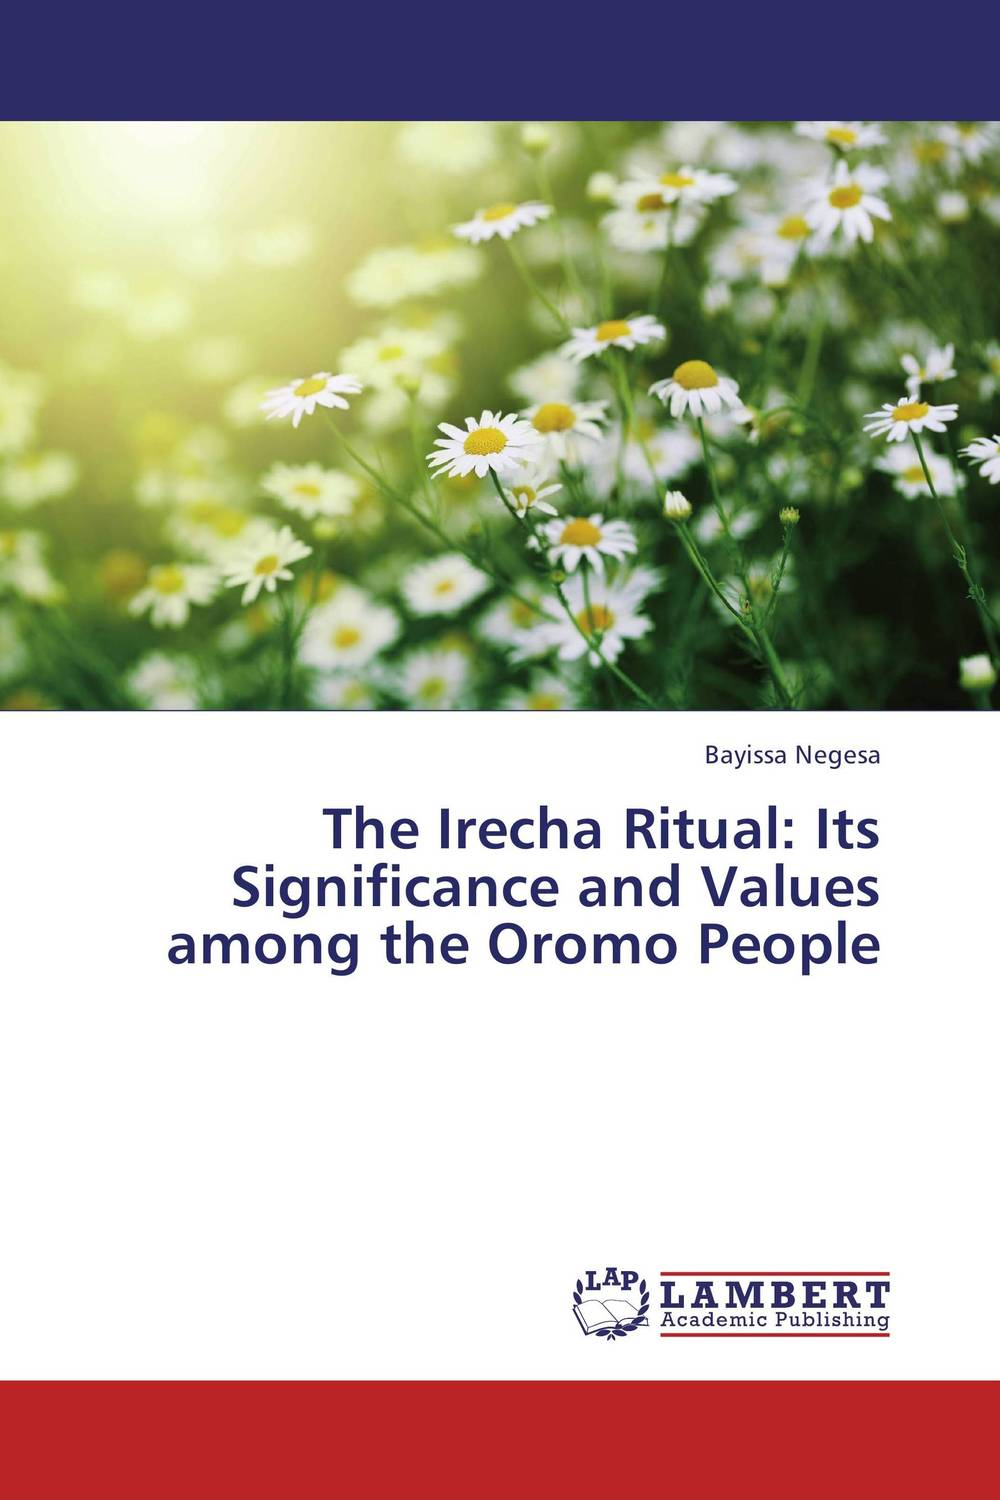 The Irecha Ritual: Its Significance and Values among the Oromo People виниловая пластинка project ritual noise natalie merchant paradise is there the new tigerlily recordings 2lp